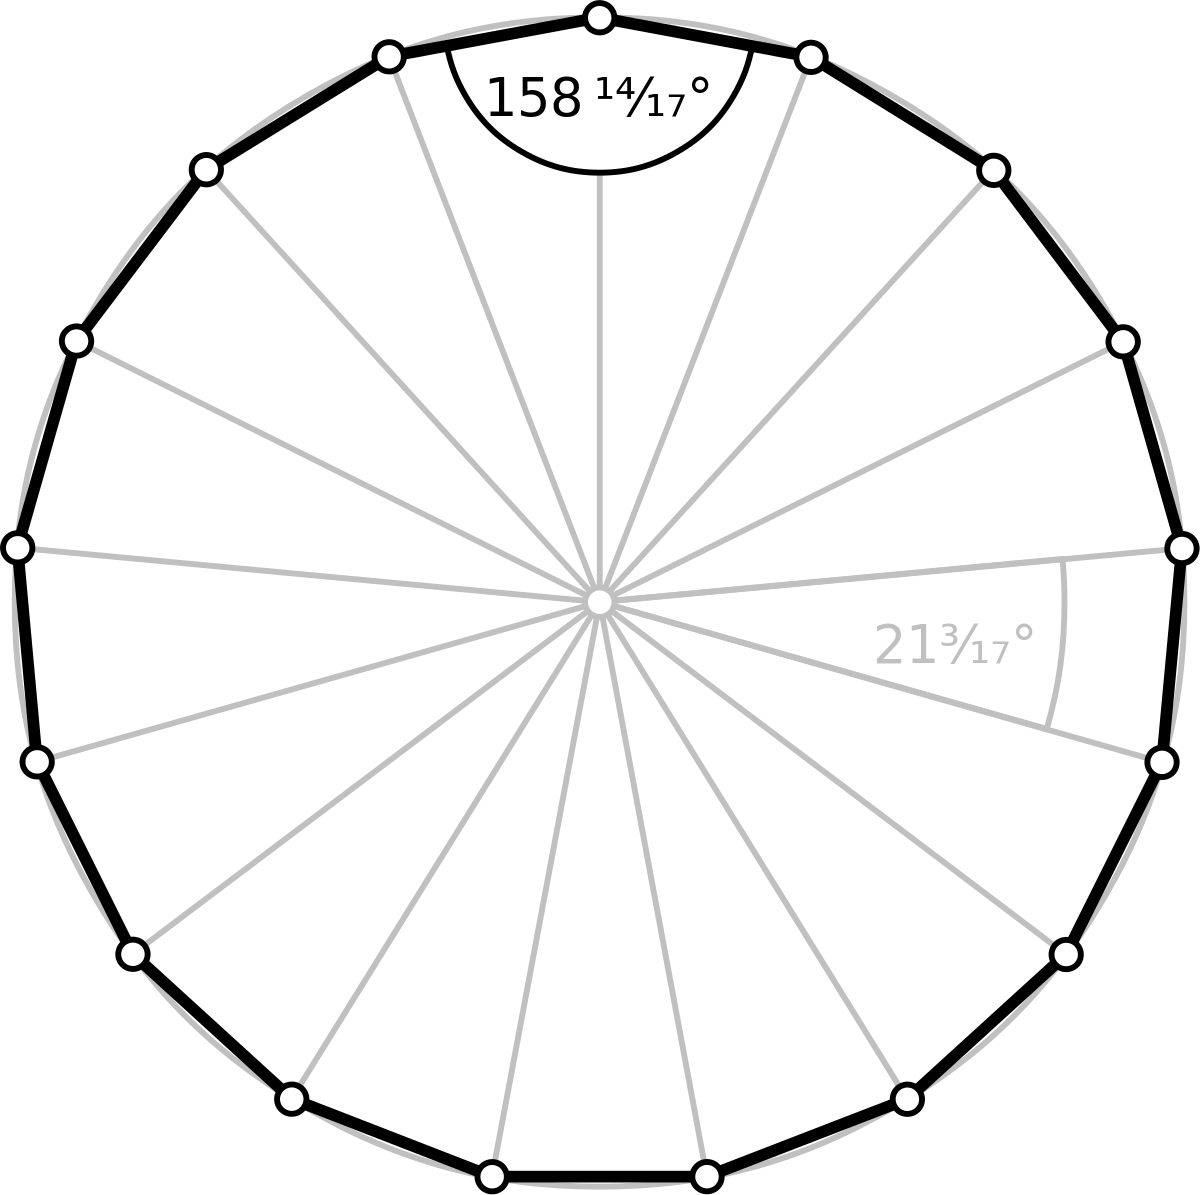 15 Polygons Drawing Random For Free Download On Ya Webdesign Voronoi Diagram Wikipedia The Encyclopedia Heptadecagon Compass Clip Royalty